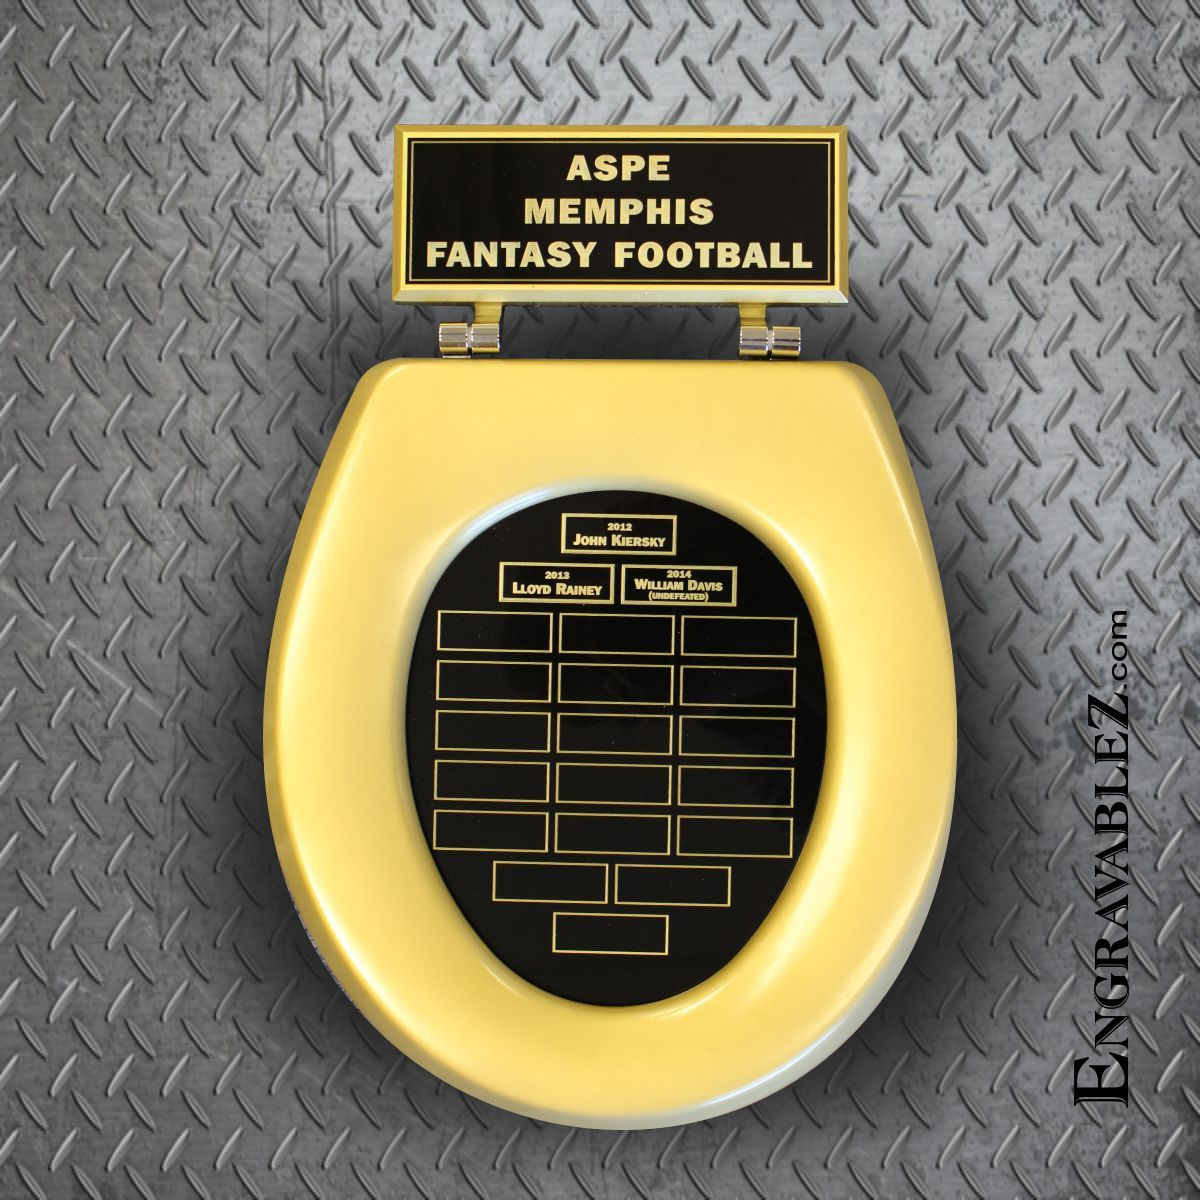 Yes This Is An Awesome Fantasy Football Trophy Golden